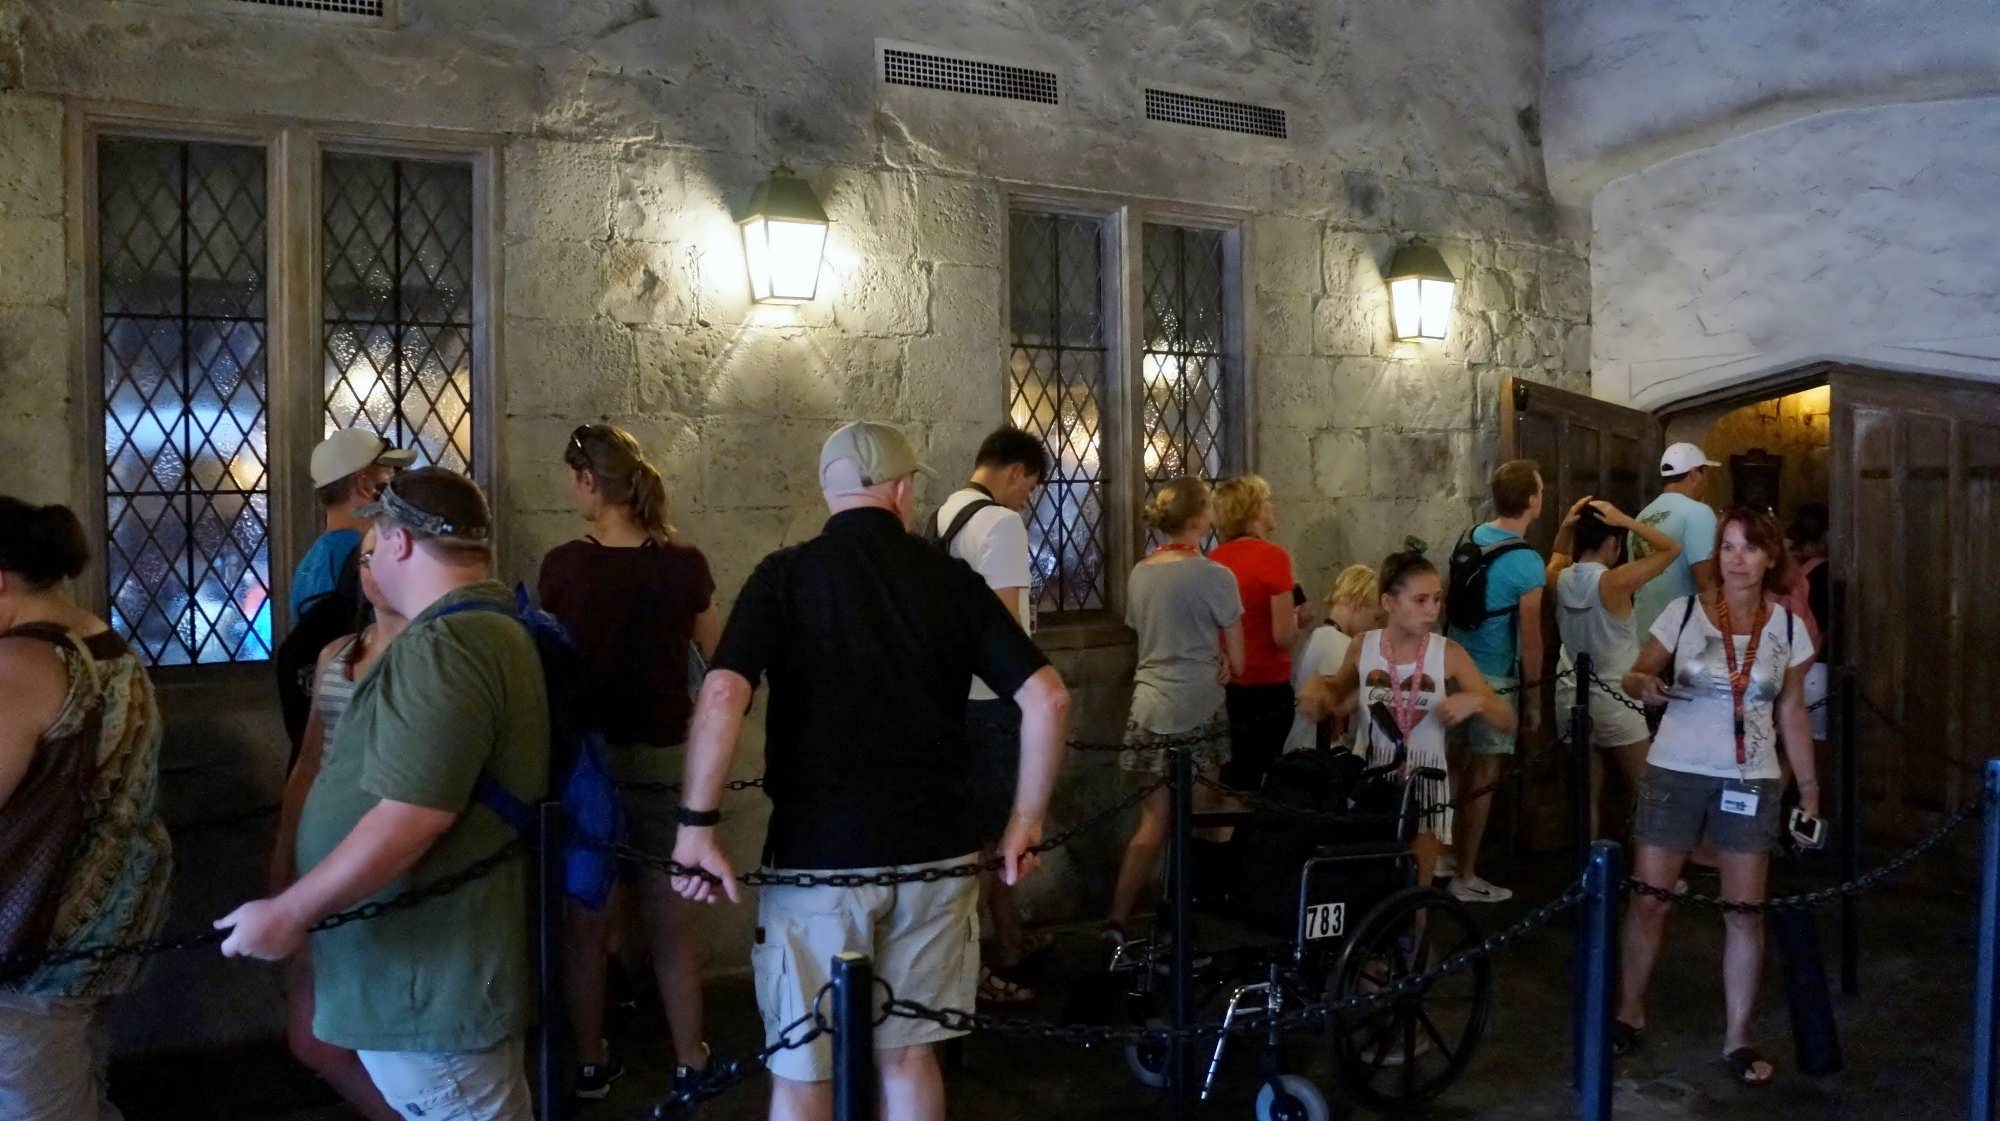 The queue at The Leaky Cauldron